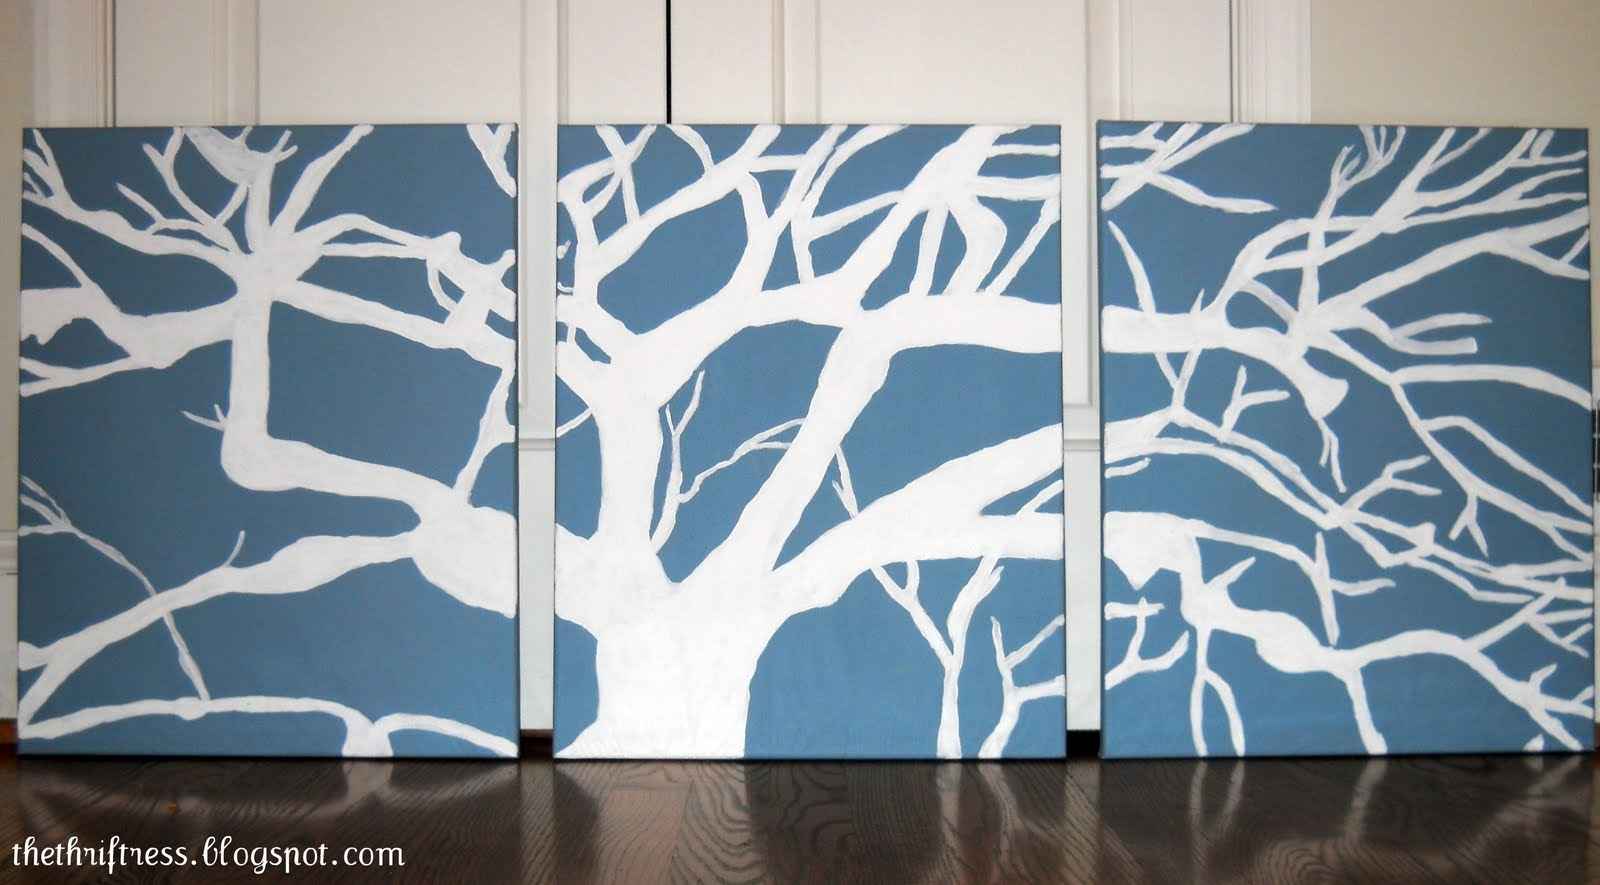 Diy Wall Art Stencils Paint Fabric – Dma Homes | #37854 Throughout Latest Fabric Tree Wall Art (Gallery 3 of 15)